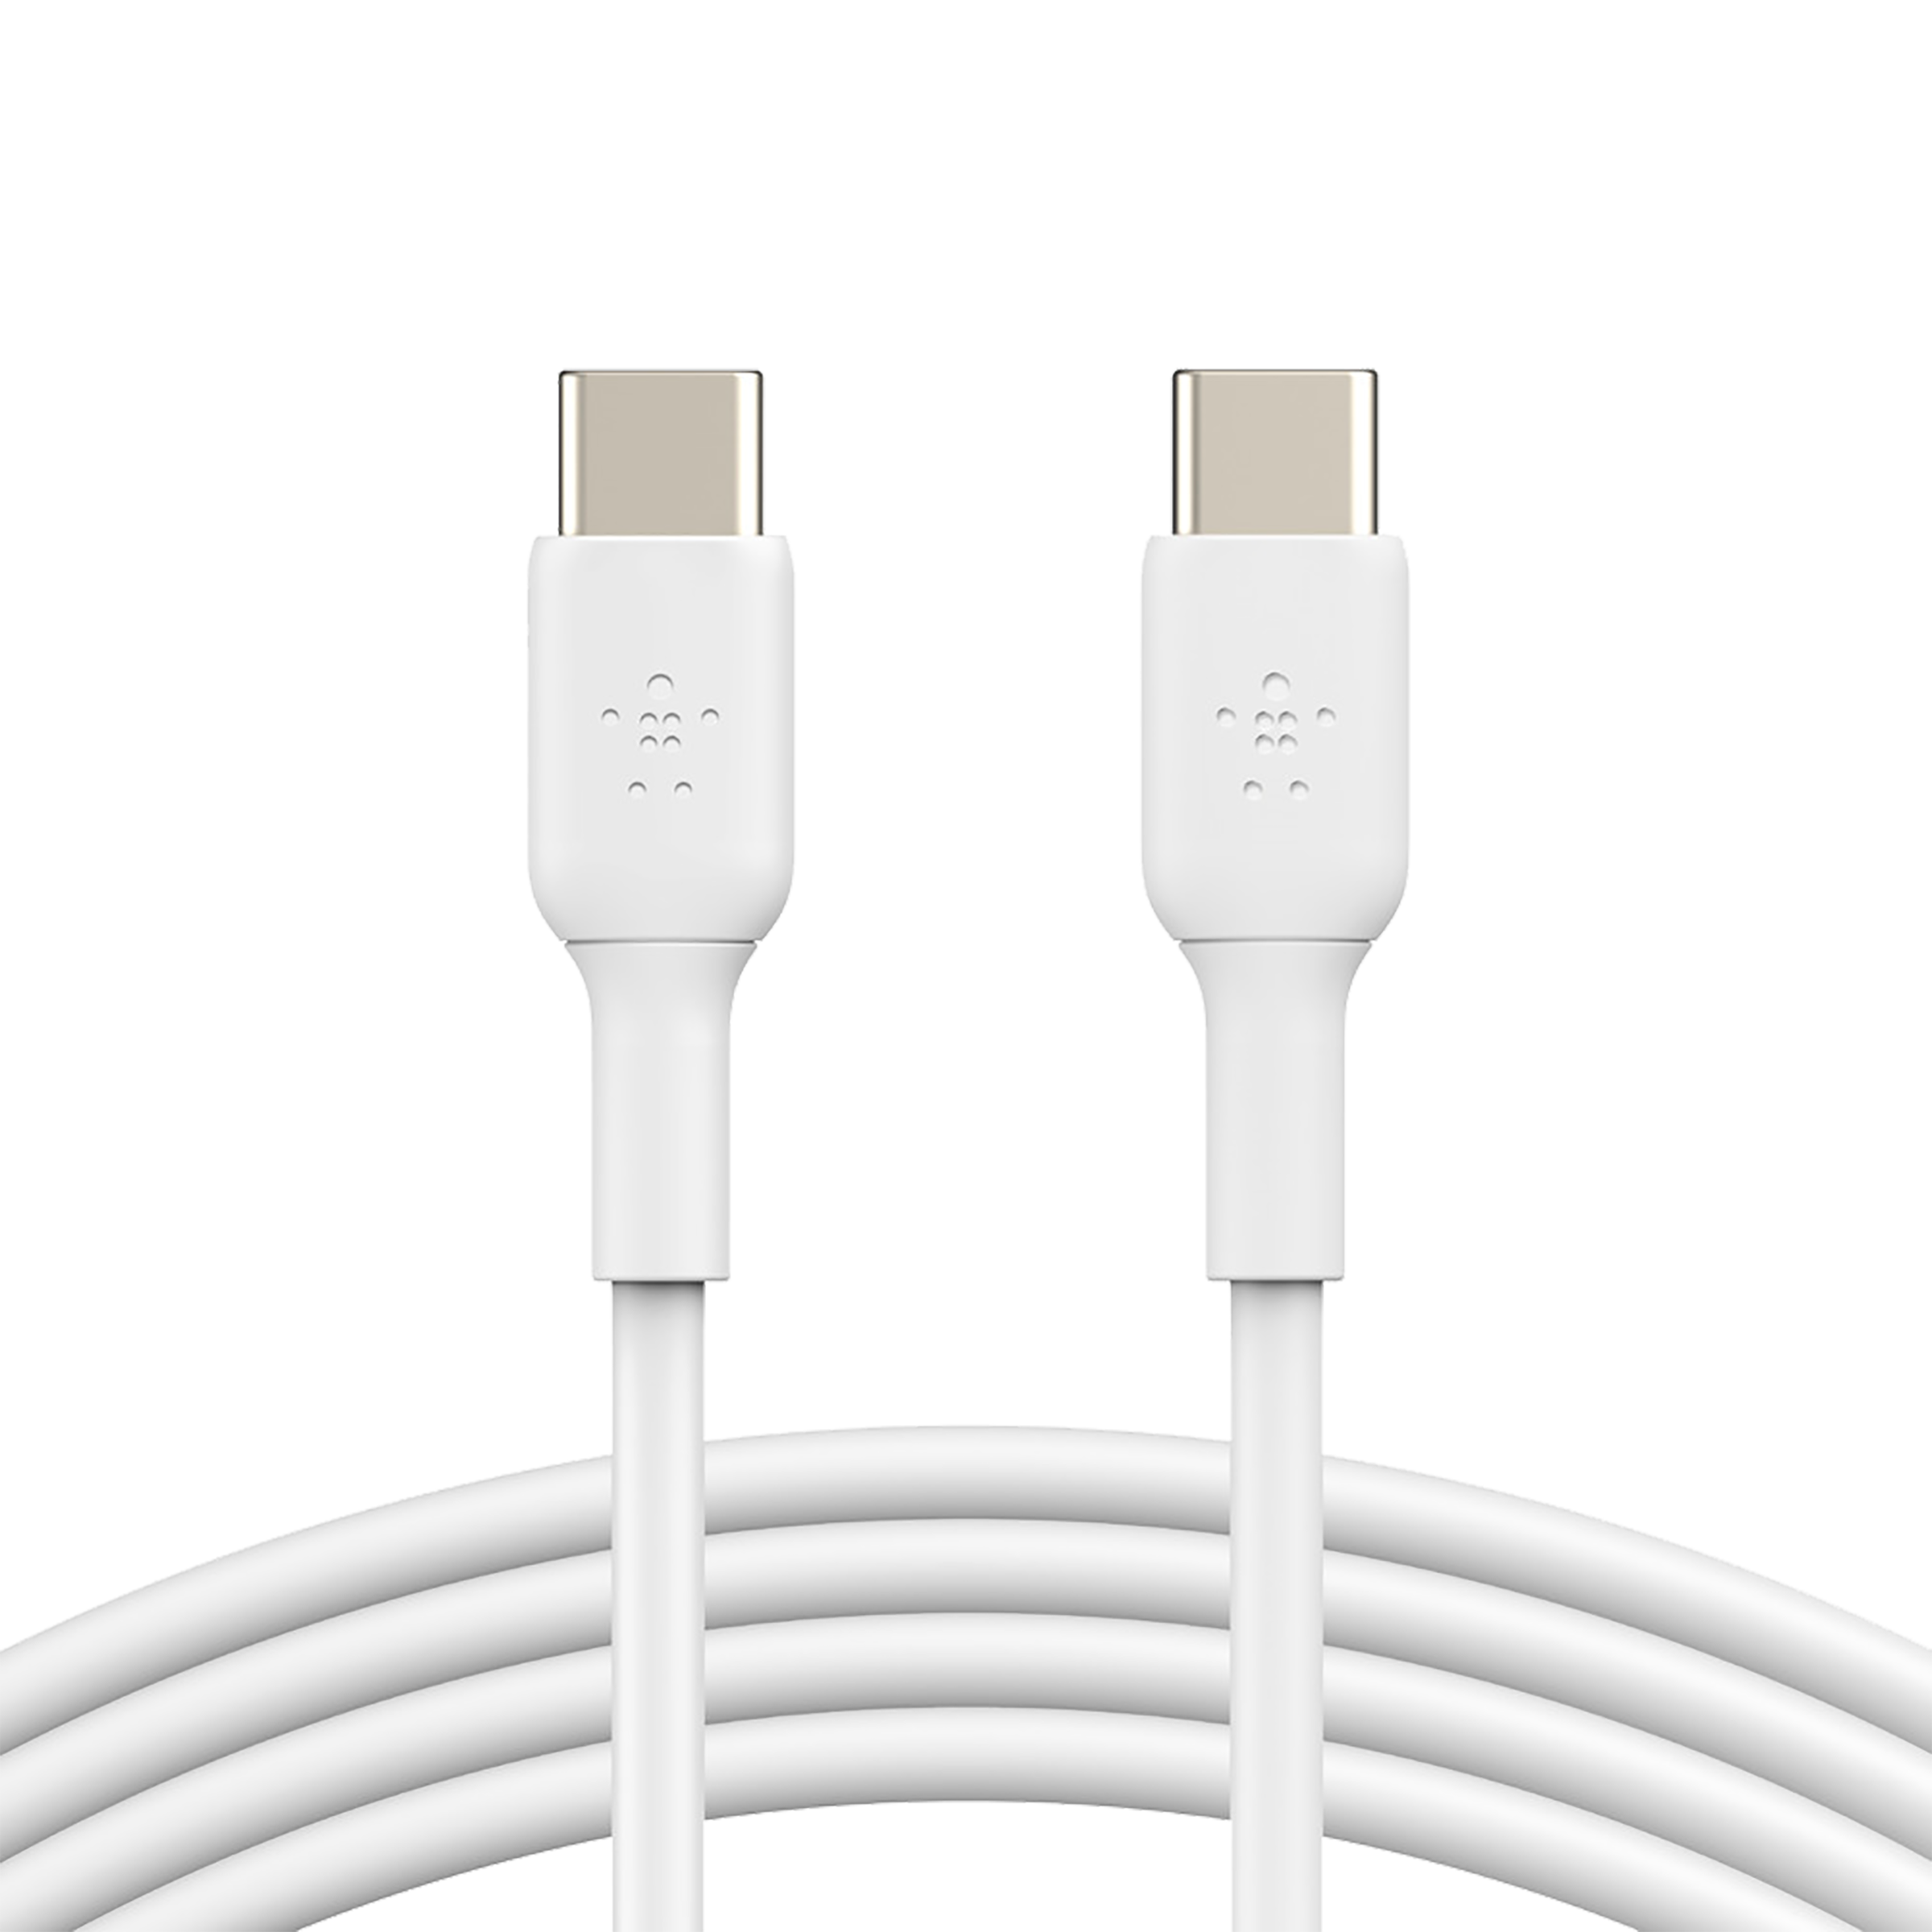 Belkin Boost Charge 1 Meter USB 2.0 (Type-C) to USB 2.0 (Type-C) Power/Charging USB Cable (USB-IF Certified, CAB003bt1MWH, White)_1